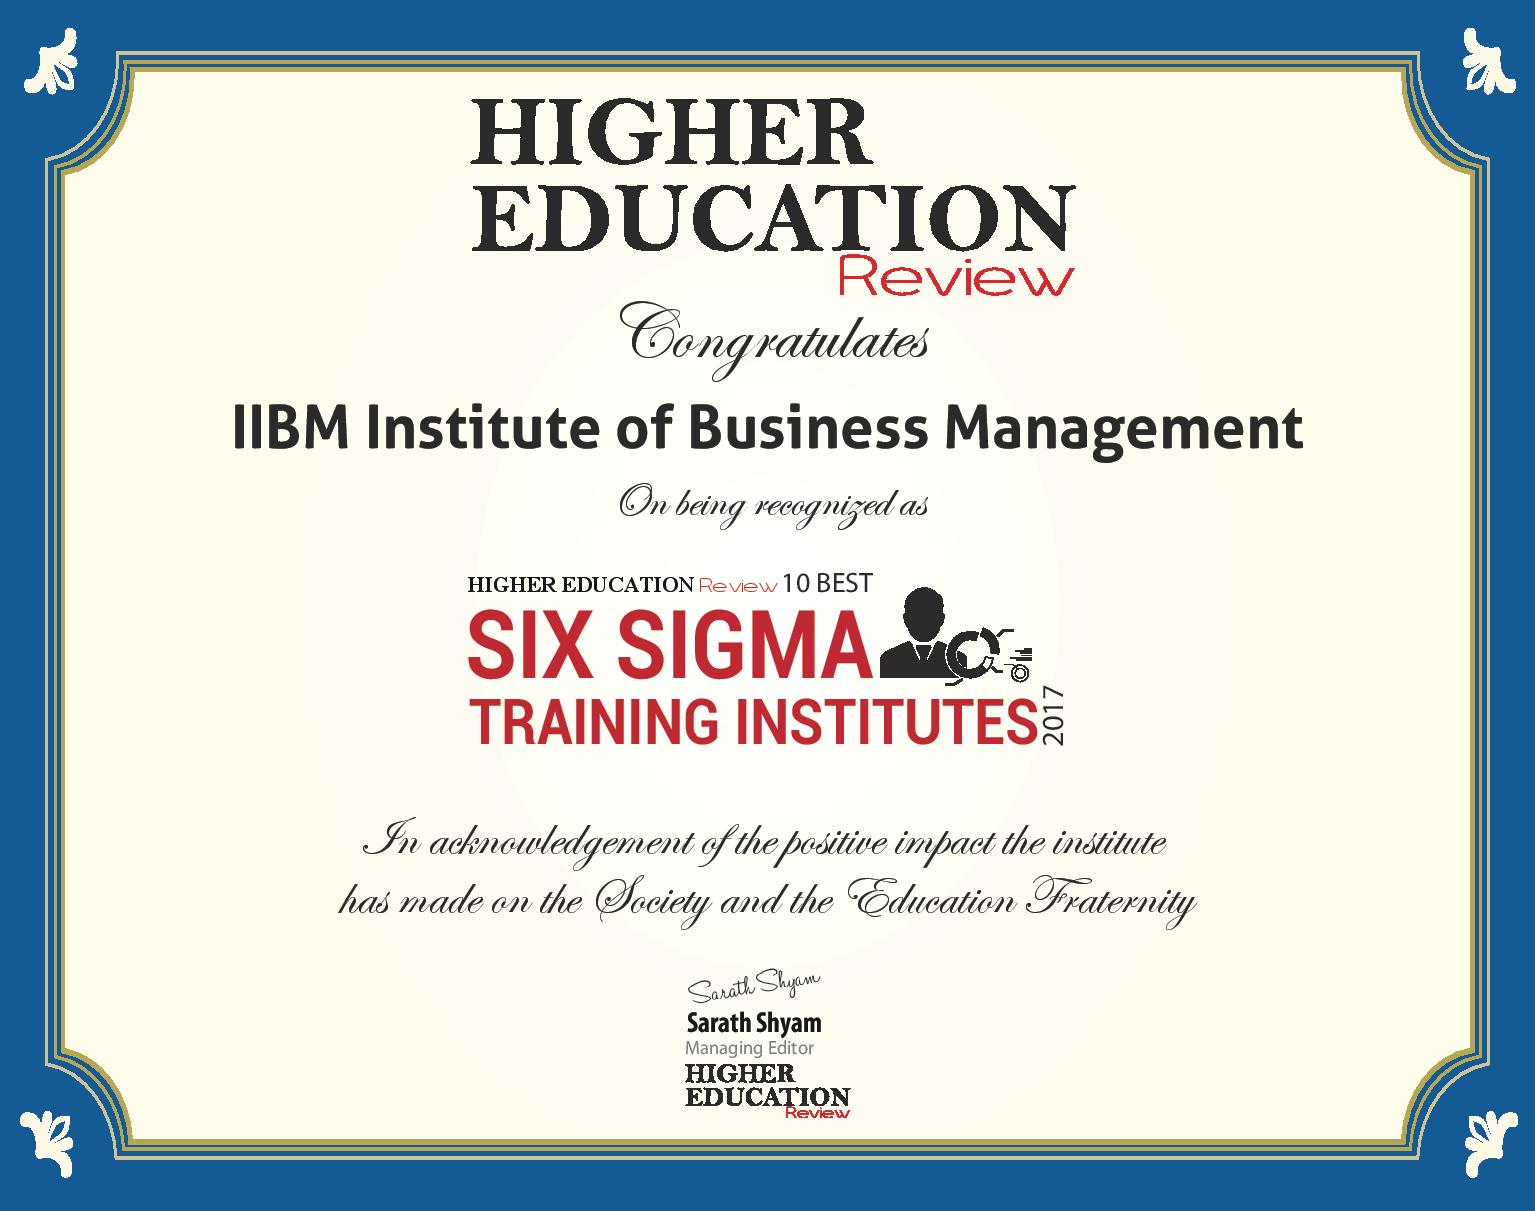 Iibm six sigma certification courses iibm six sigma certificate awards and accolades xflitez Gallery